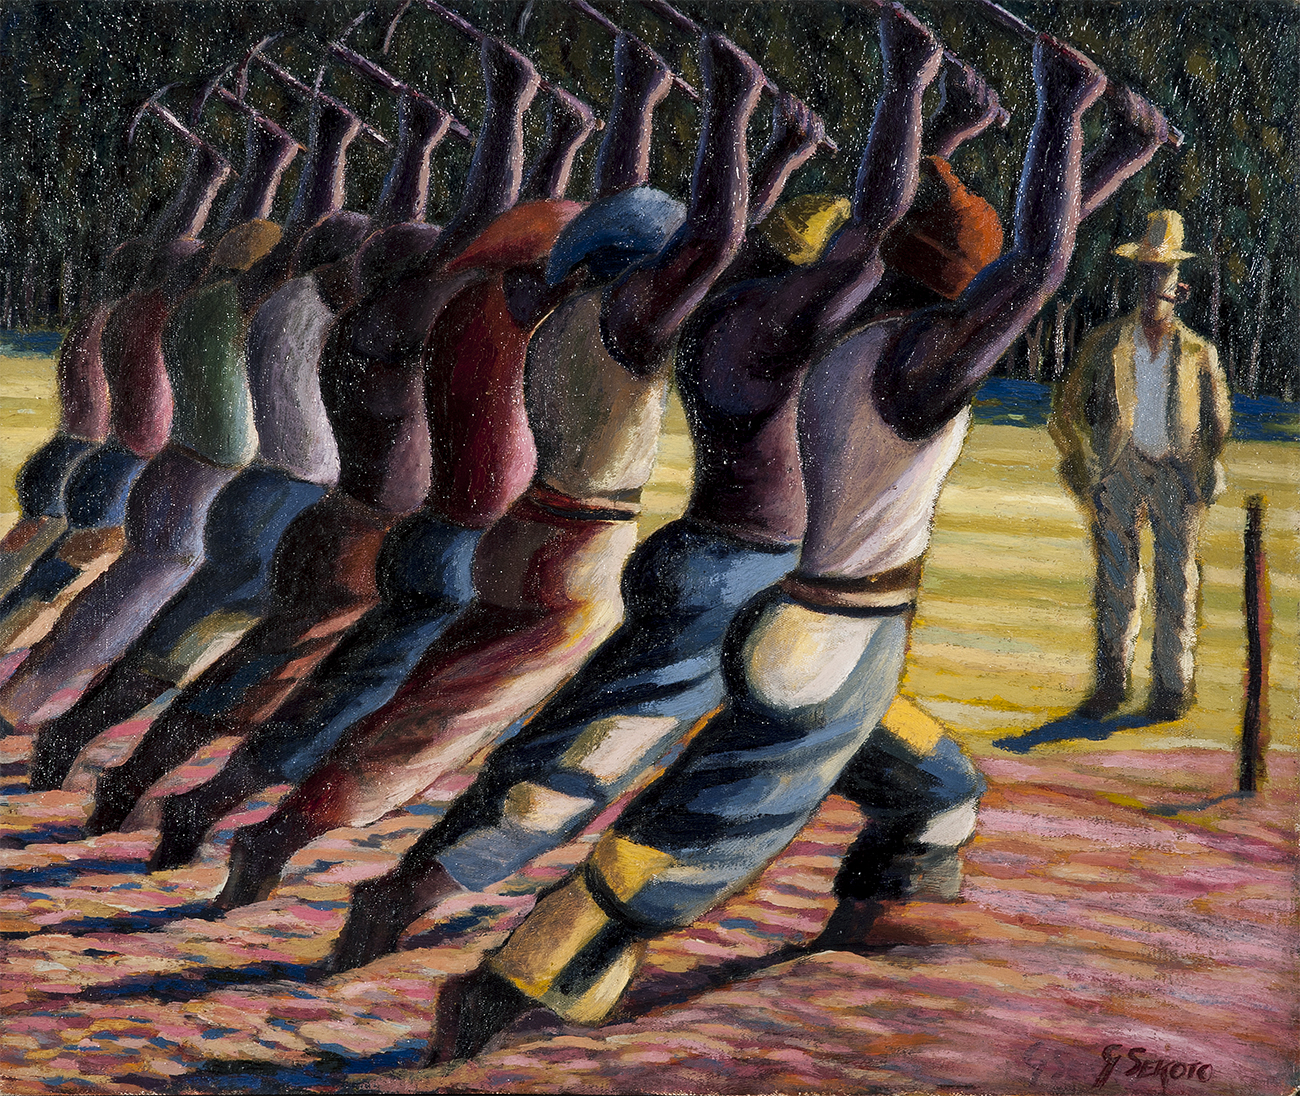 Gerard Sekoto (1913–1993), Song of the Pick. Oil on board, 1946. South32 SA Limited. © The Sekoto Foundation.